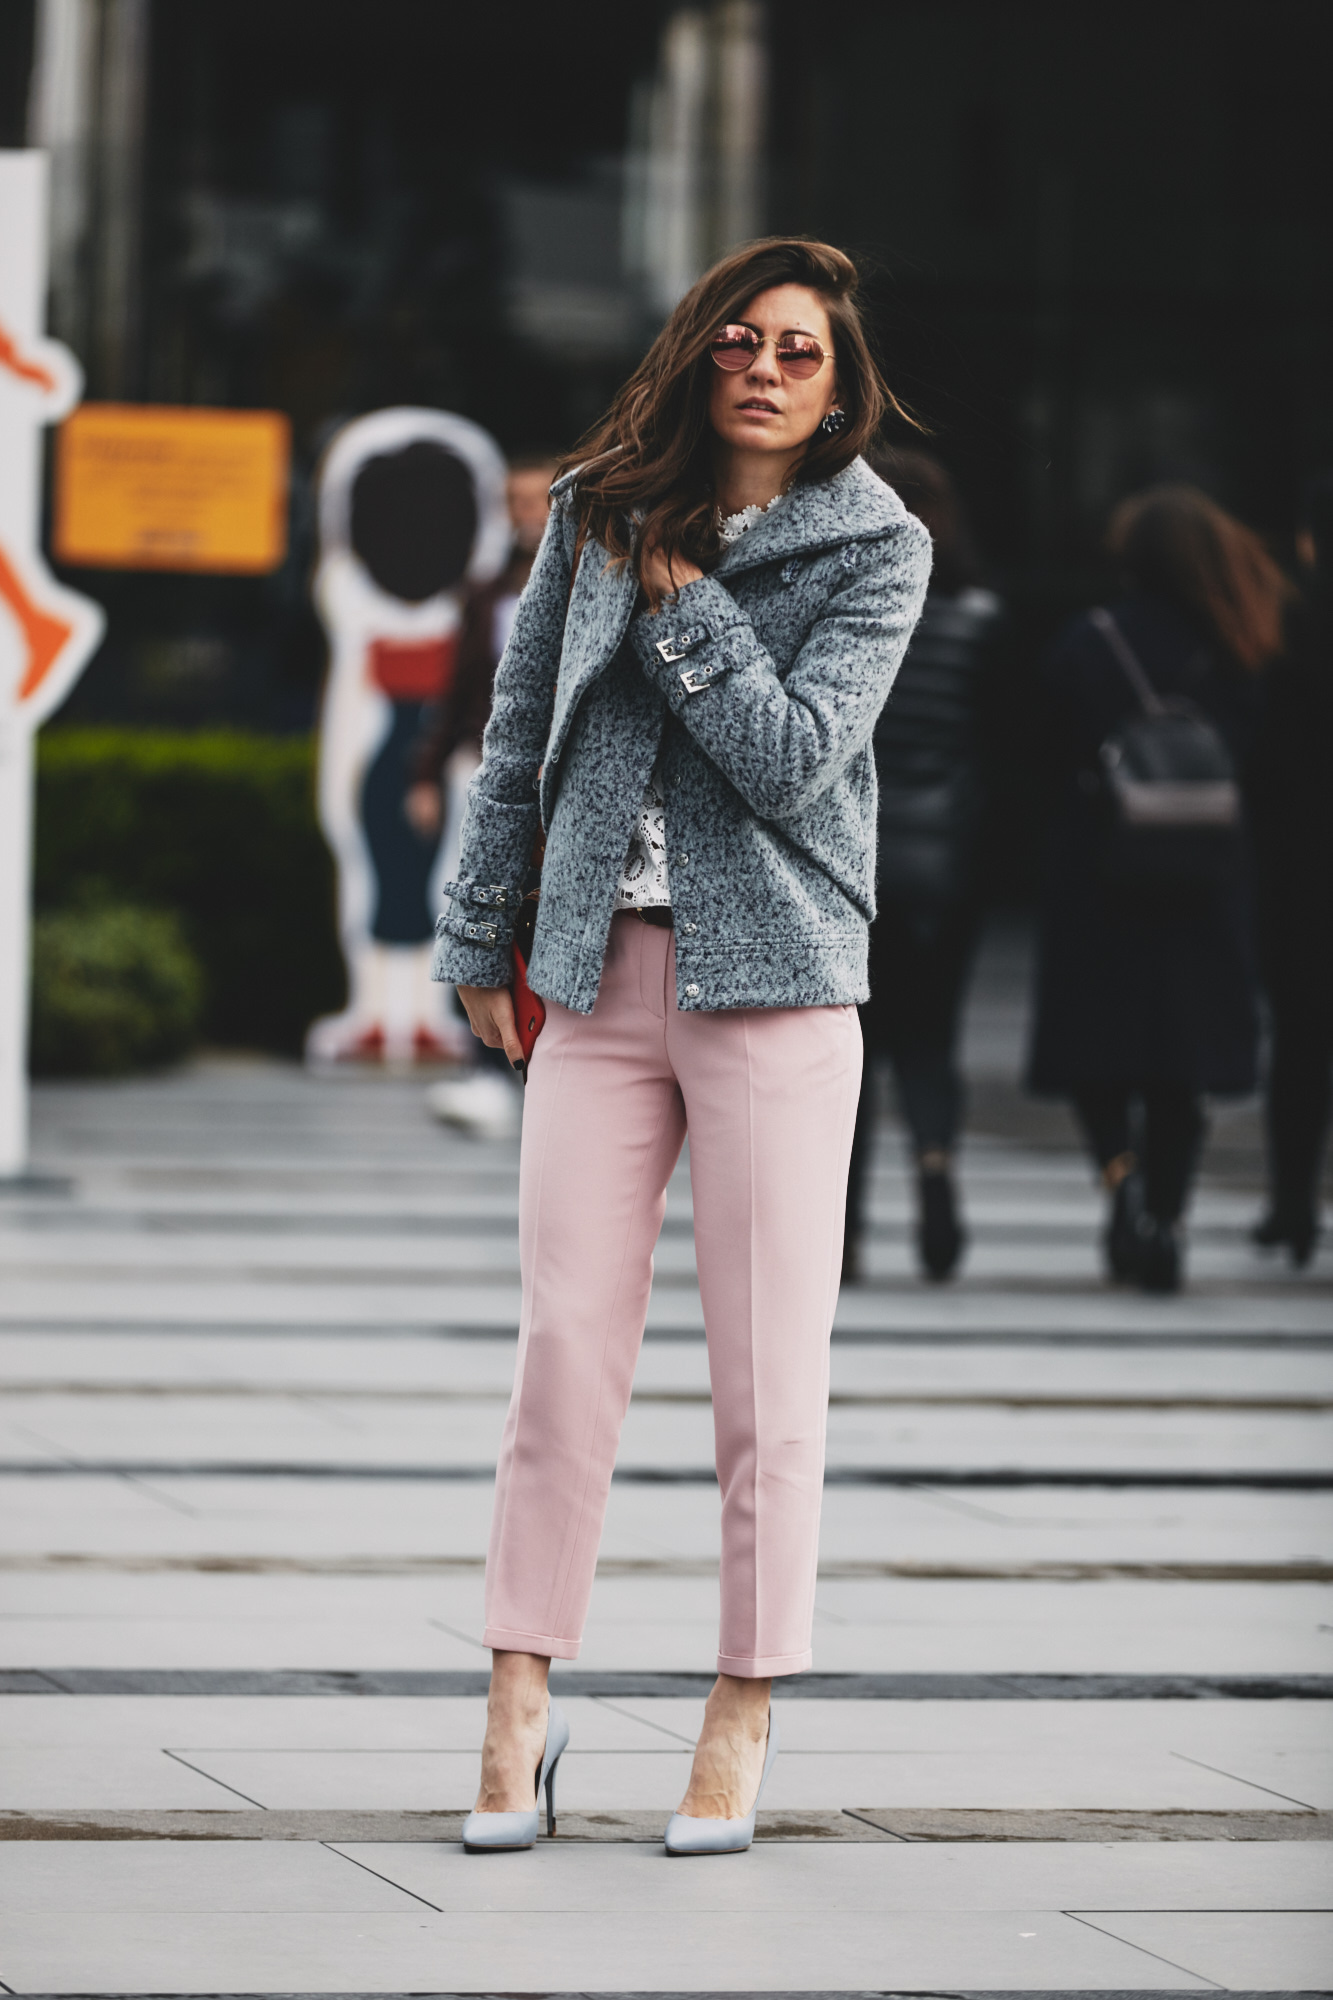 billur saatci, street style, mbfwi, off ne giysem, turkish style blogger, mercedes benz fashion week istanbul, fee dan, mybestfriends, fendi, rayban, selfportrait, chloe